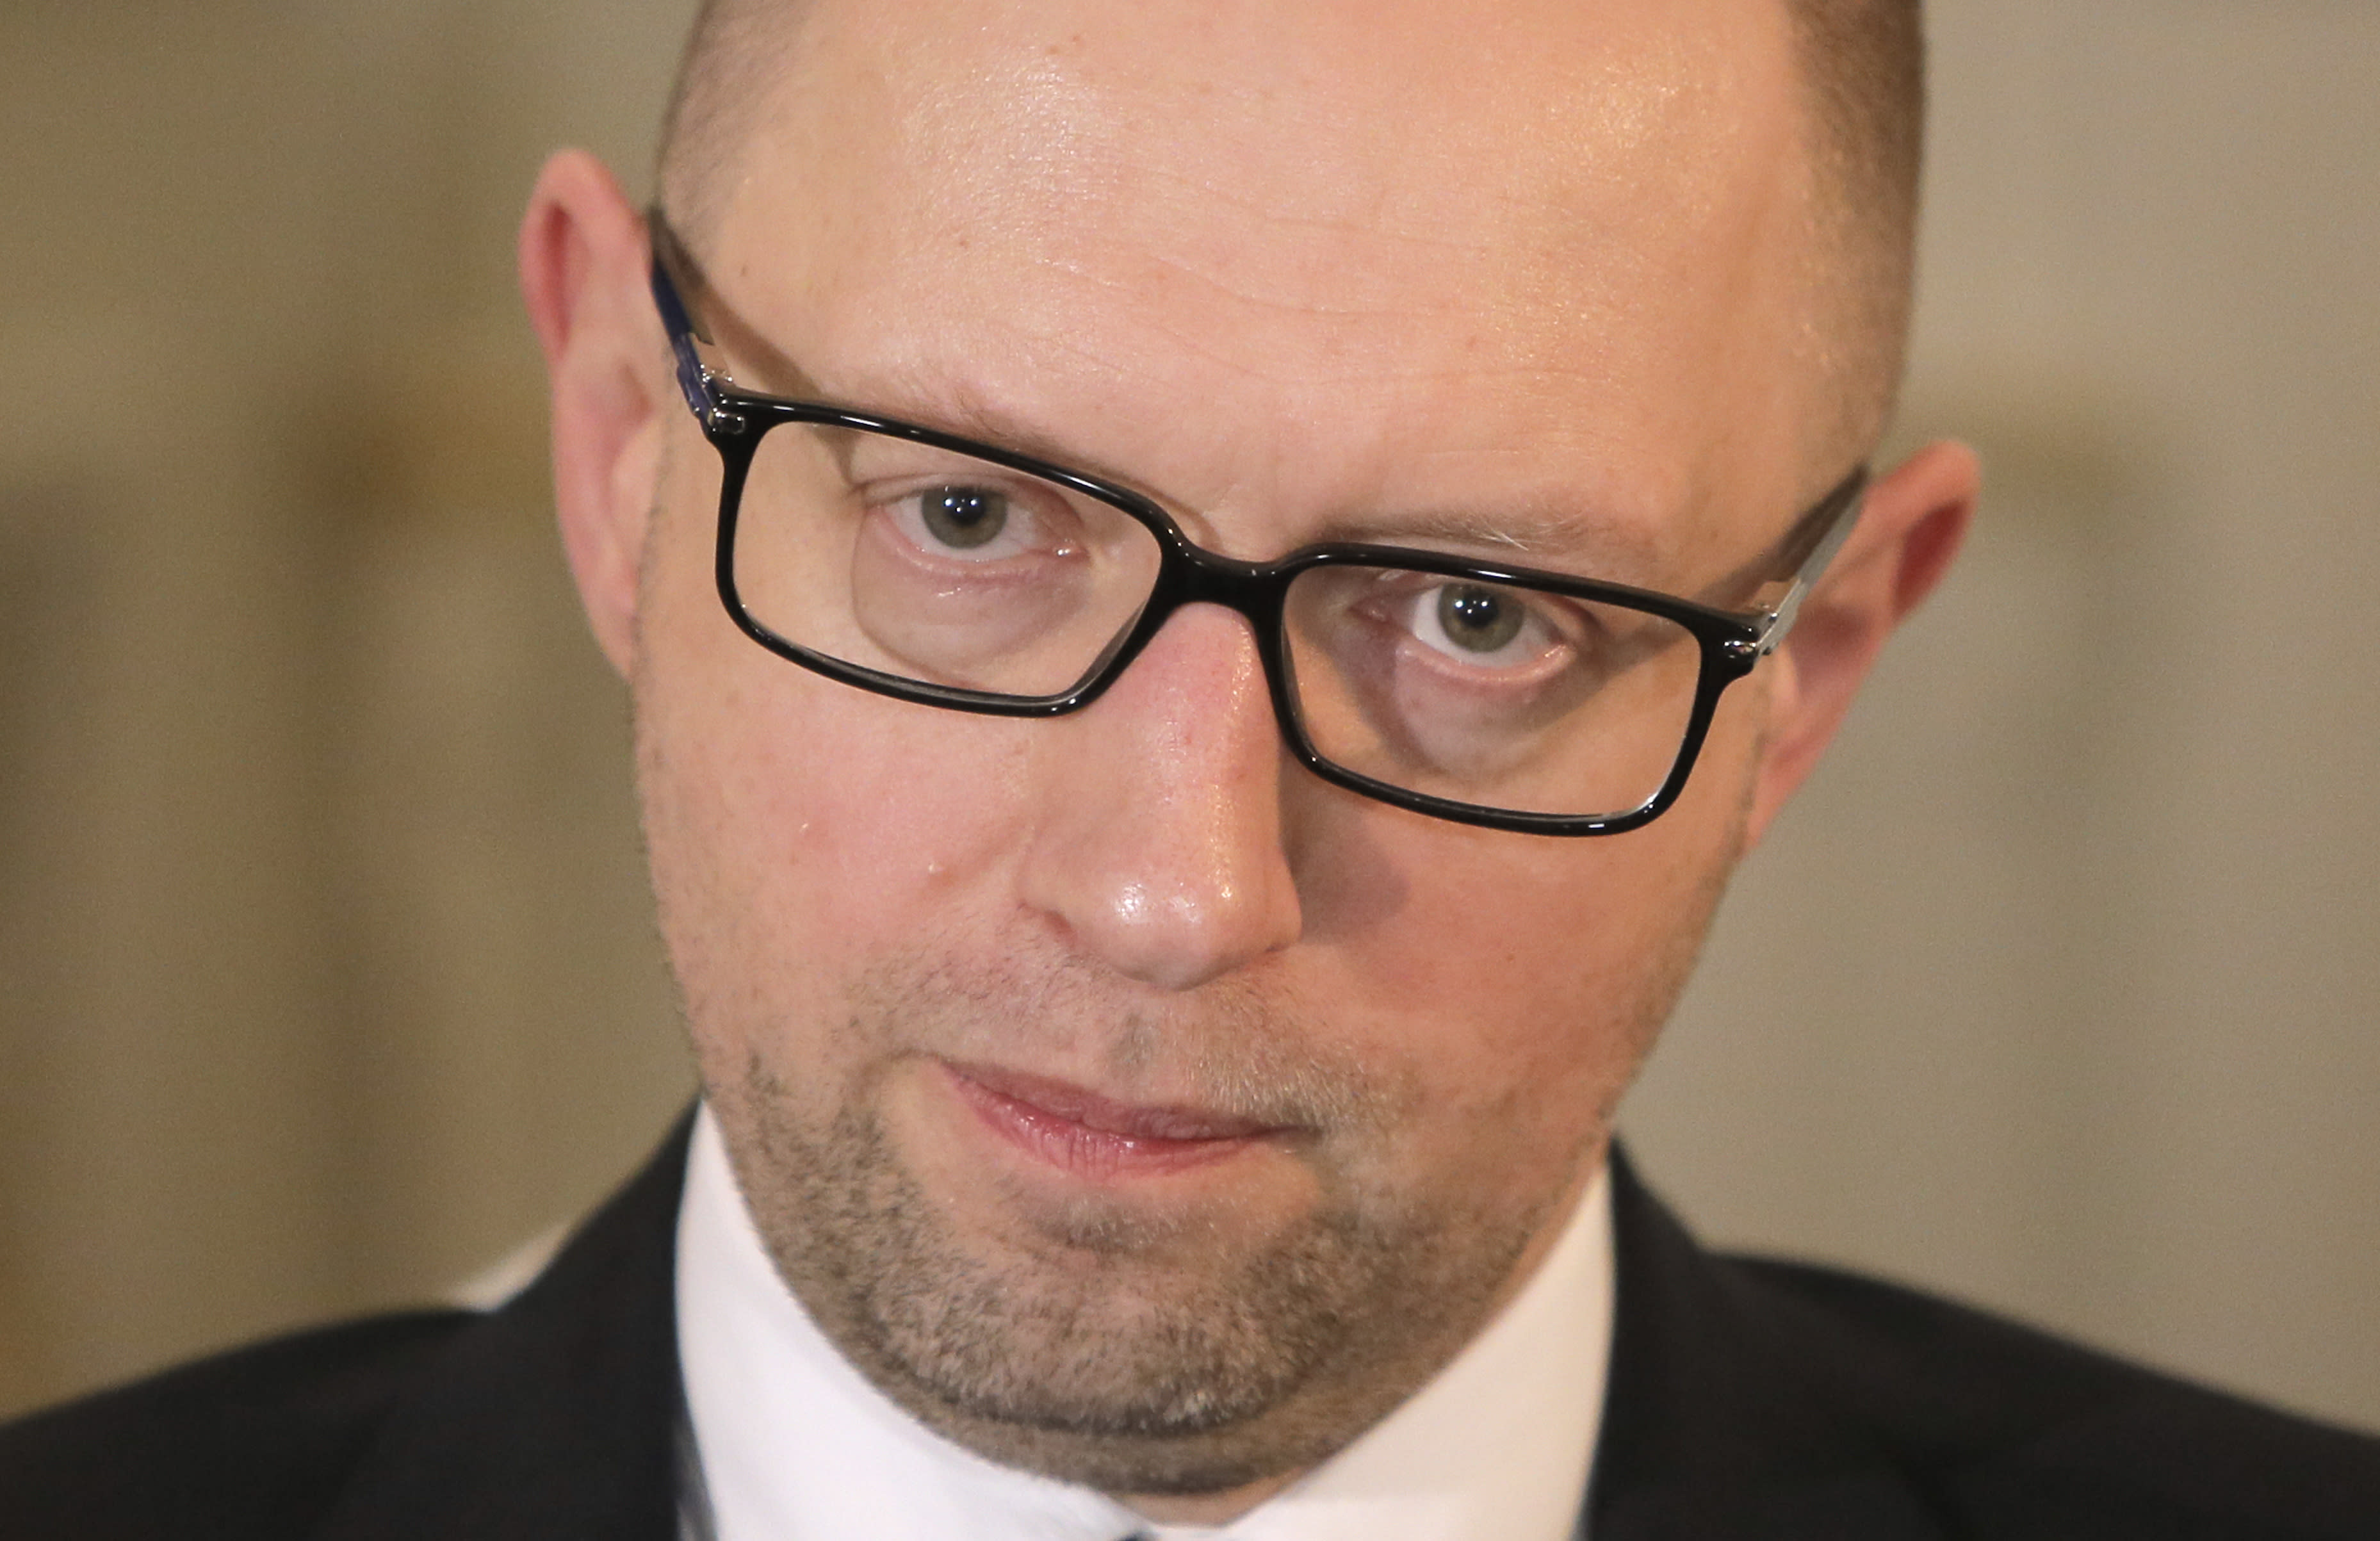 AP Interview: Ukraine PM: Russia could spark new offensive